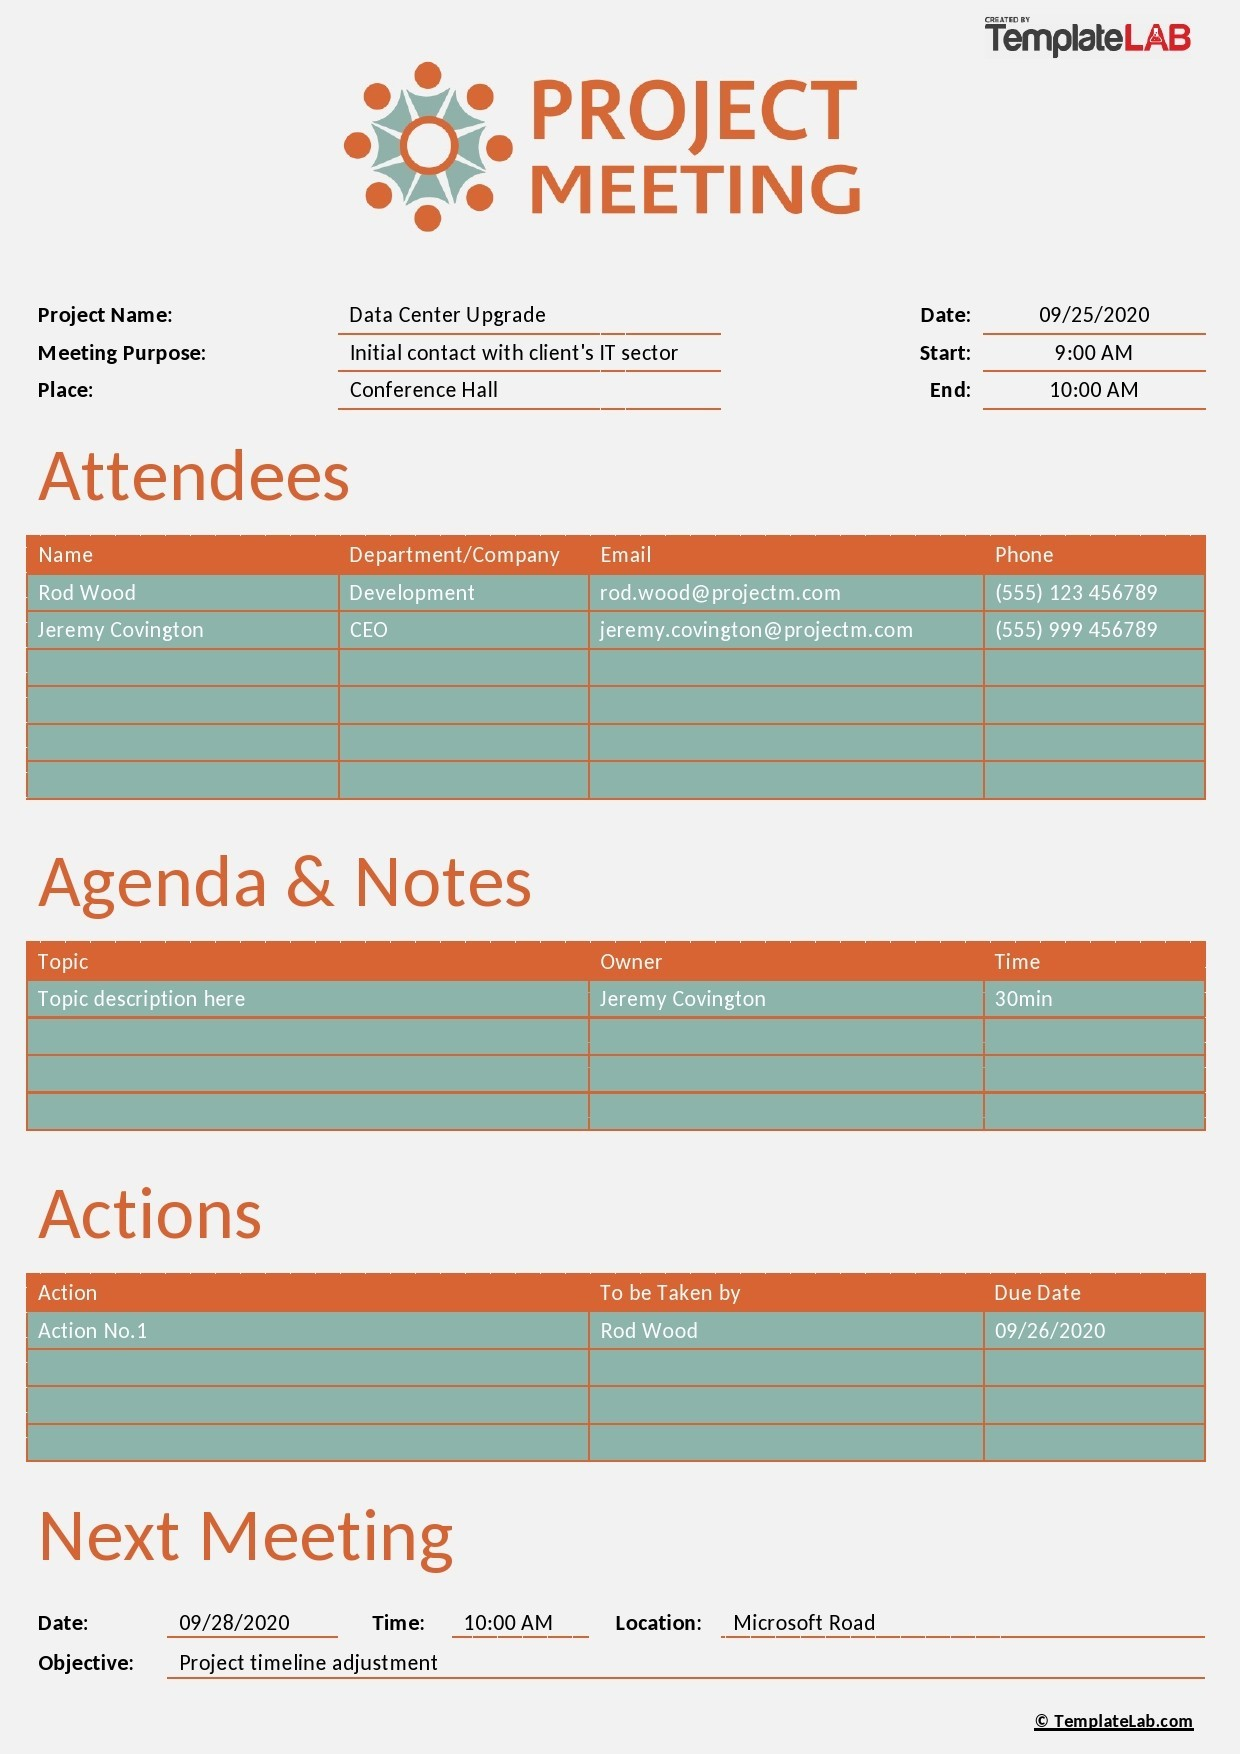 Free Project Meeting Notes Template - TemplateLab.com